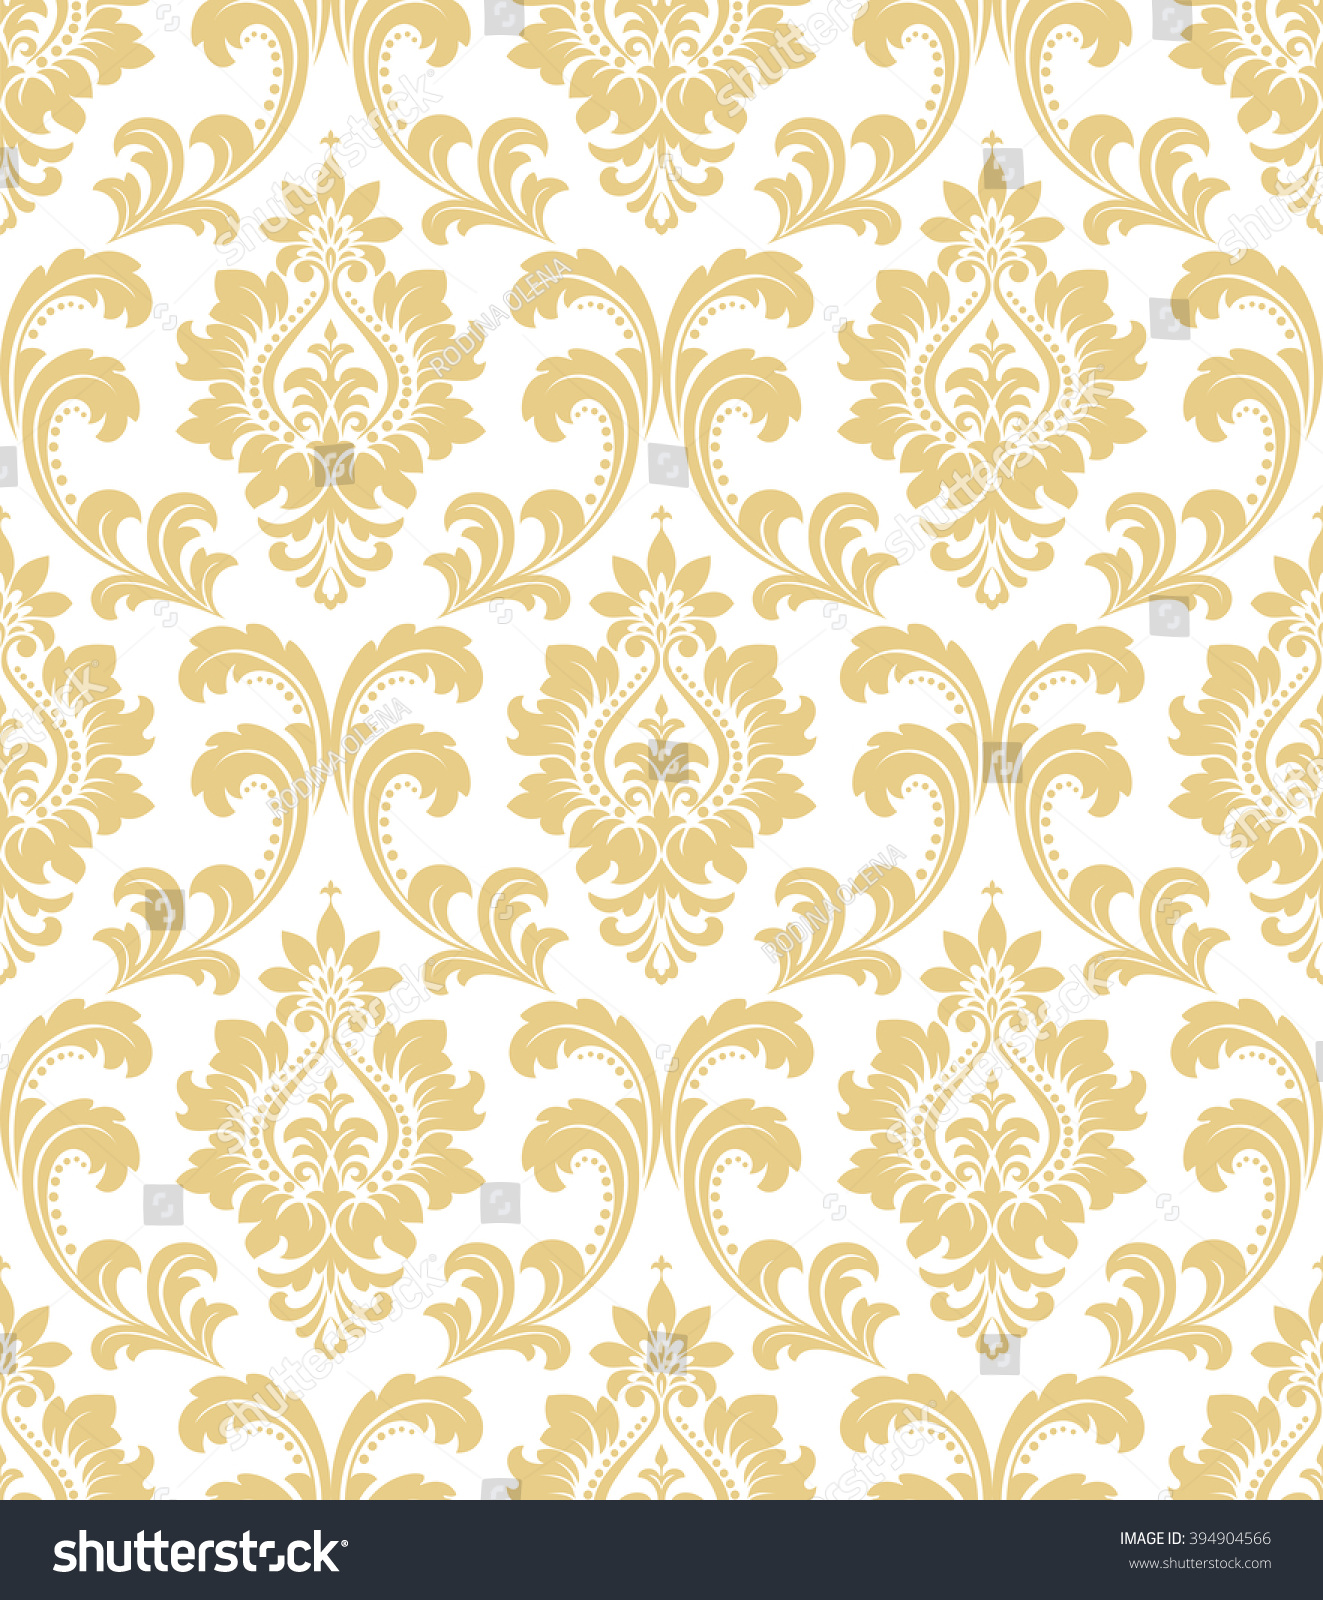 Floral Pattern Wallpaper Baroque Damask Seamless Background White And Gold Ornament